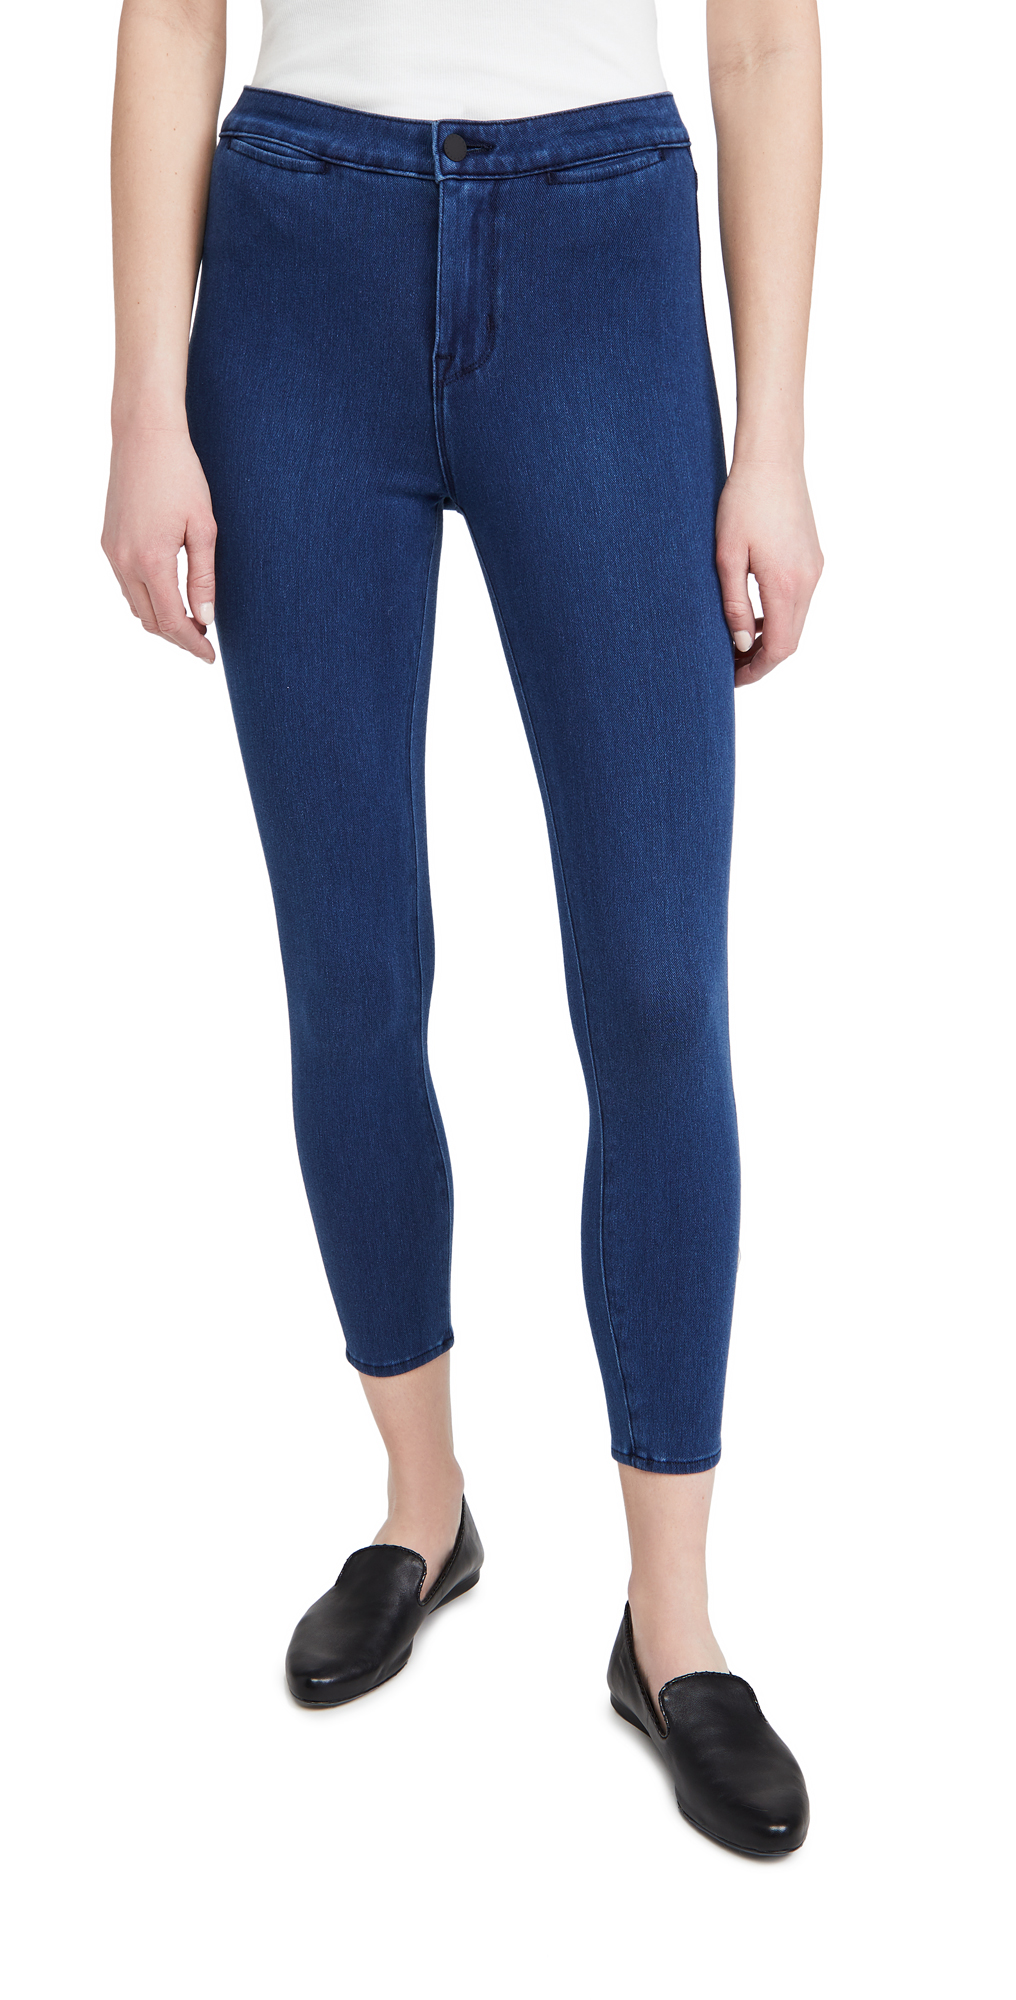 L'AGENCE Yasmeen High Rise Skinny Jeans